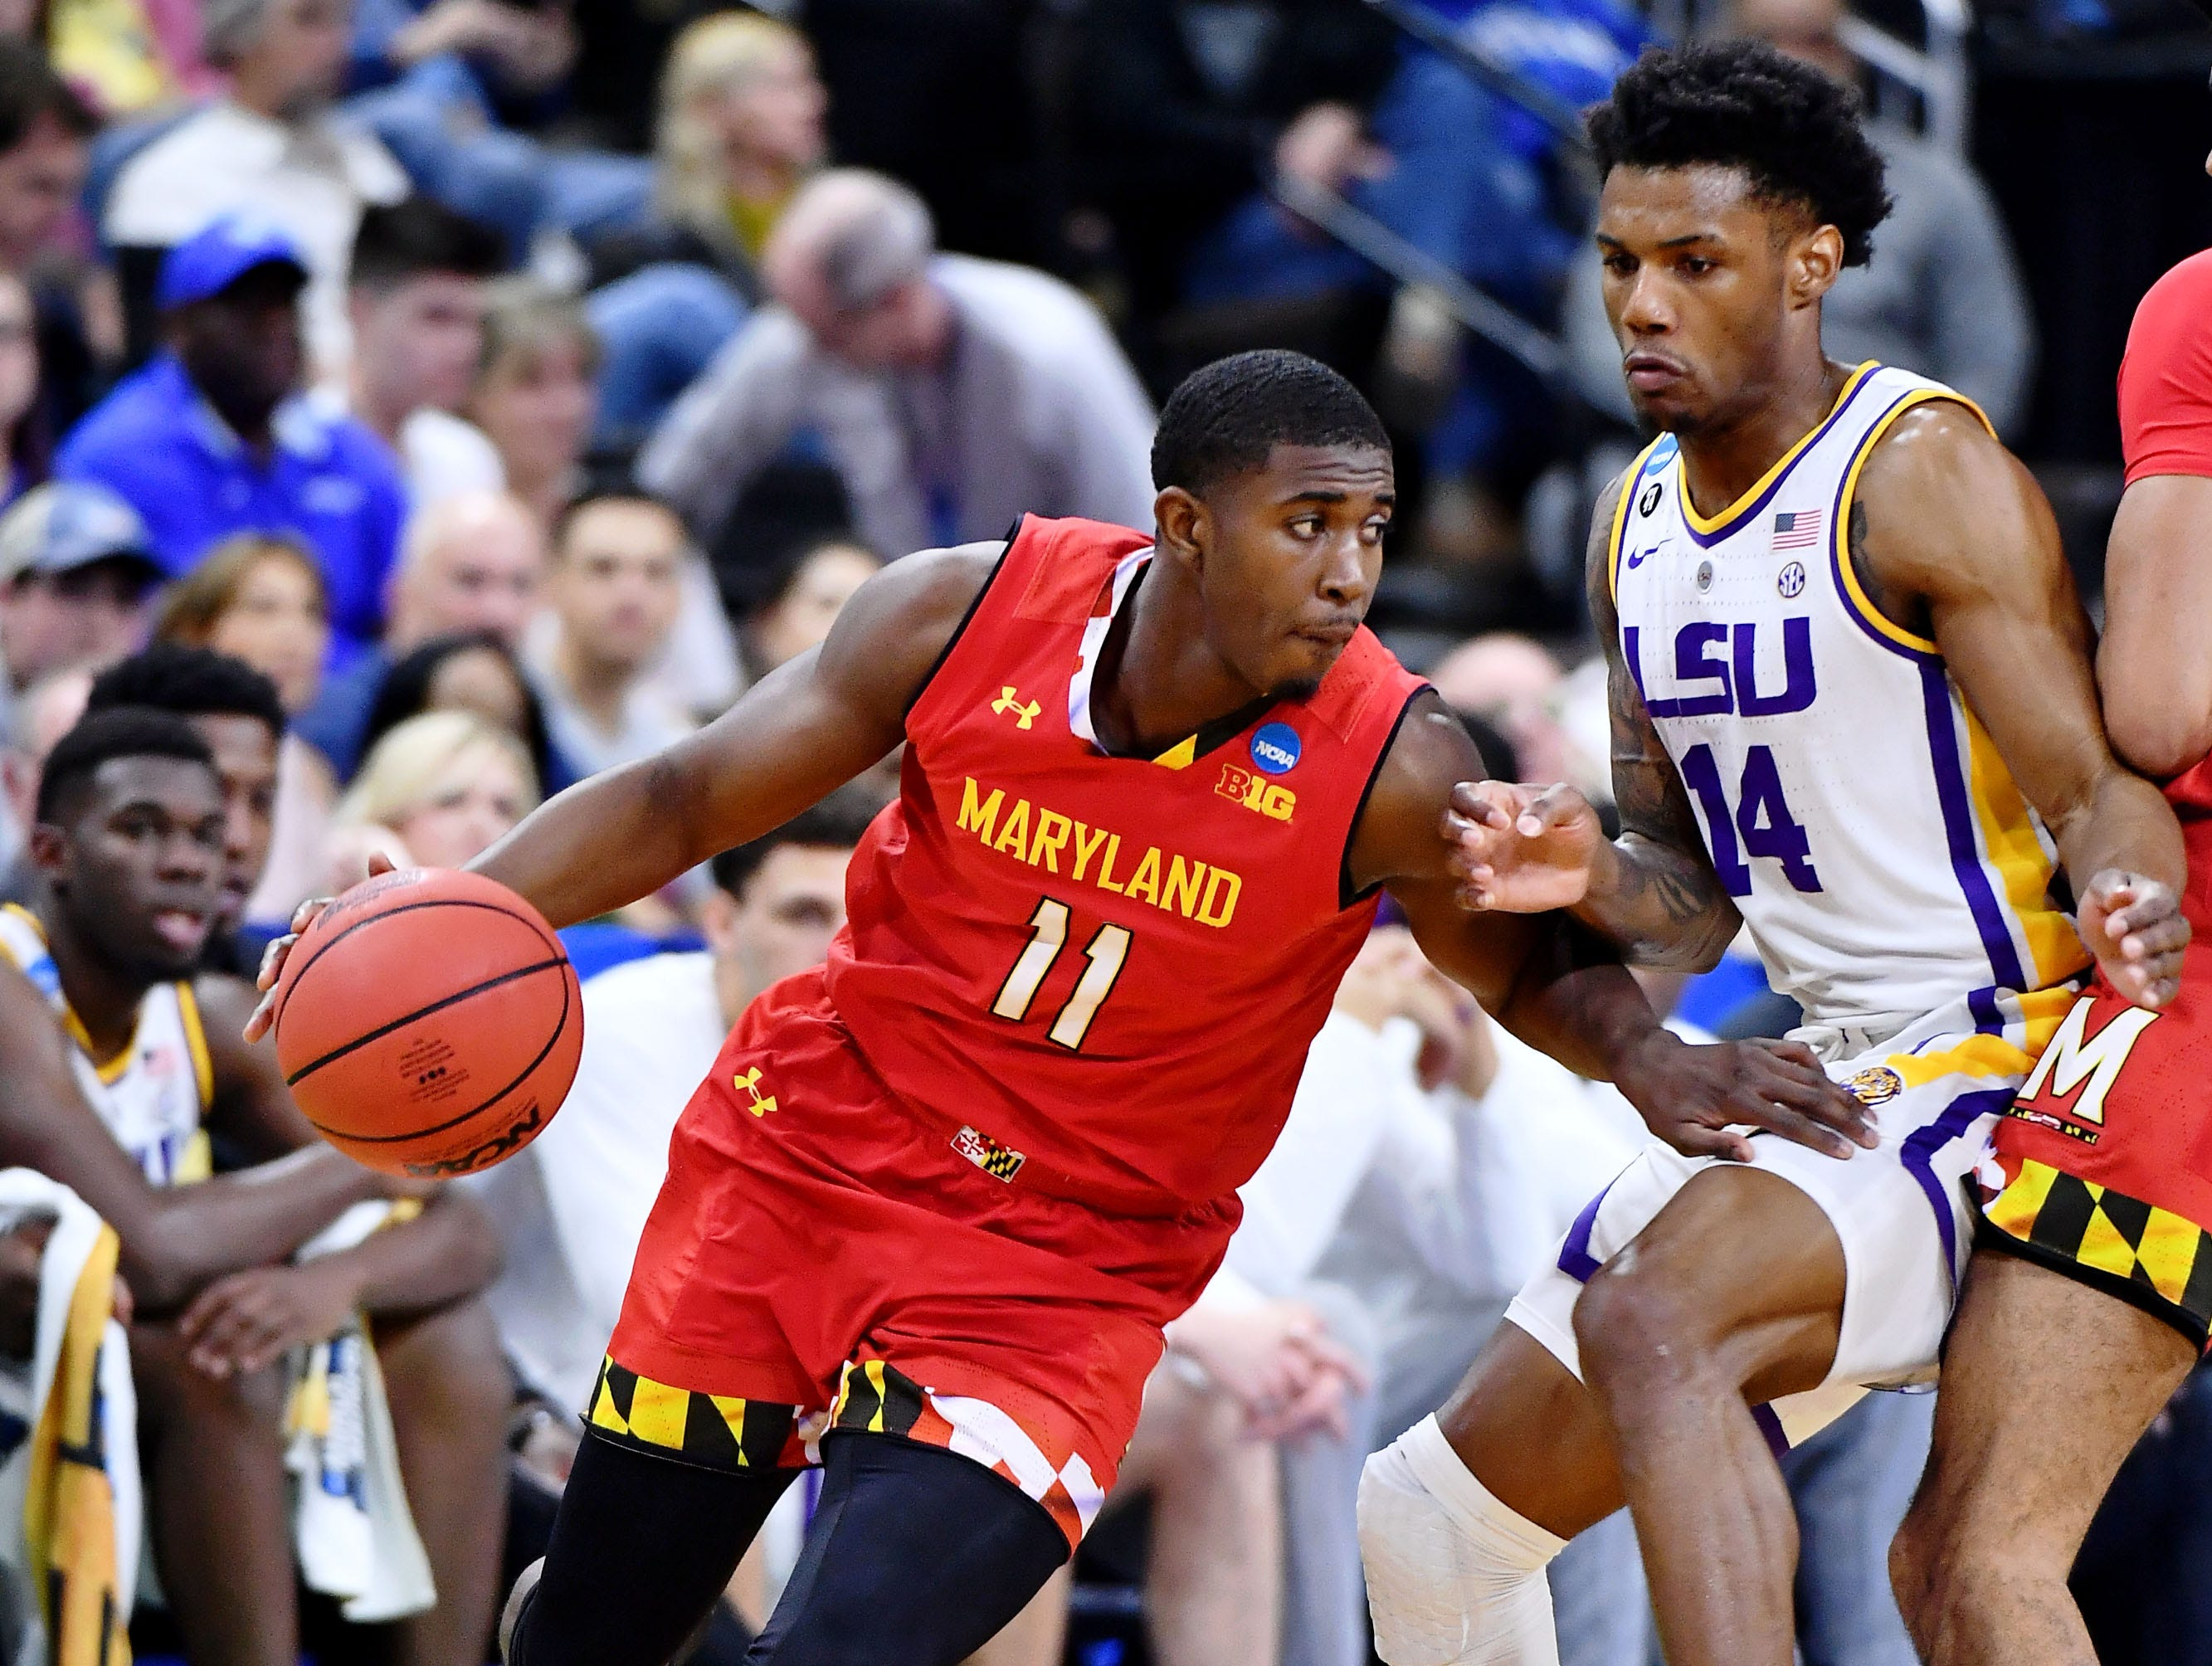 Mar 23, 2019; Jacksonville, FL, USA; Maryland Terrapins guard Darryl Morsell (11) dribbles while defended by LSU Tigers guard Marlon Taylor (14) during the first half in the second round of the 2019 NCAA Tournament at Jacksonville Veterans Memorial Arena. Mandatory Credit: John David Mercer-USA TODAY Sports